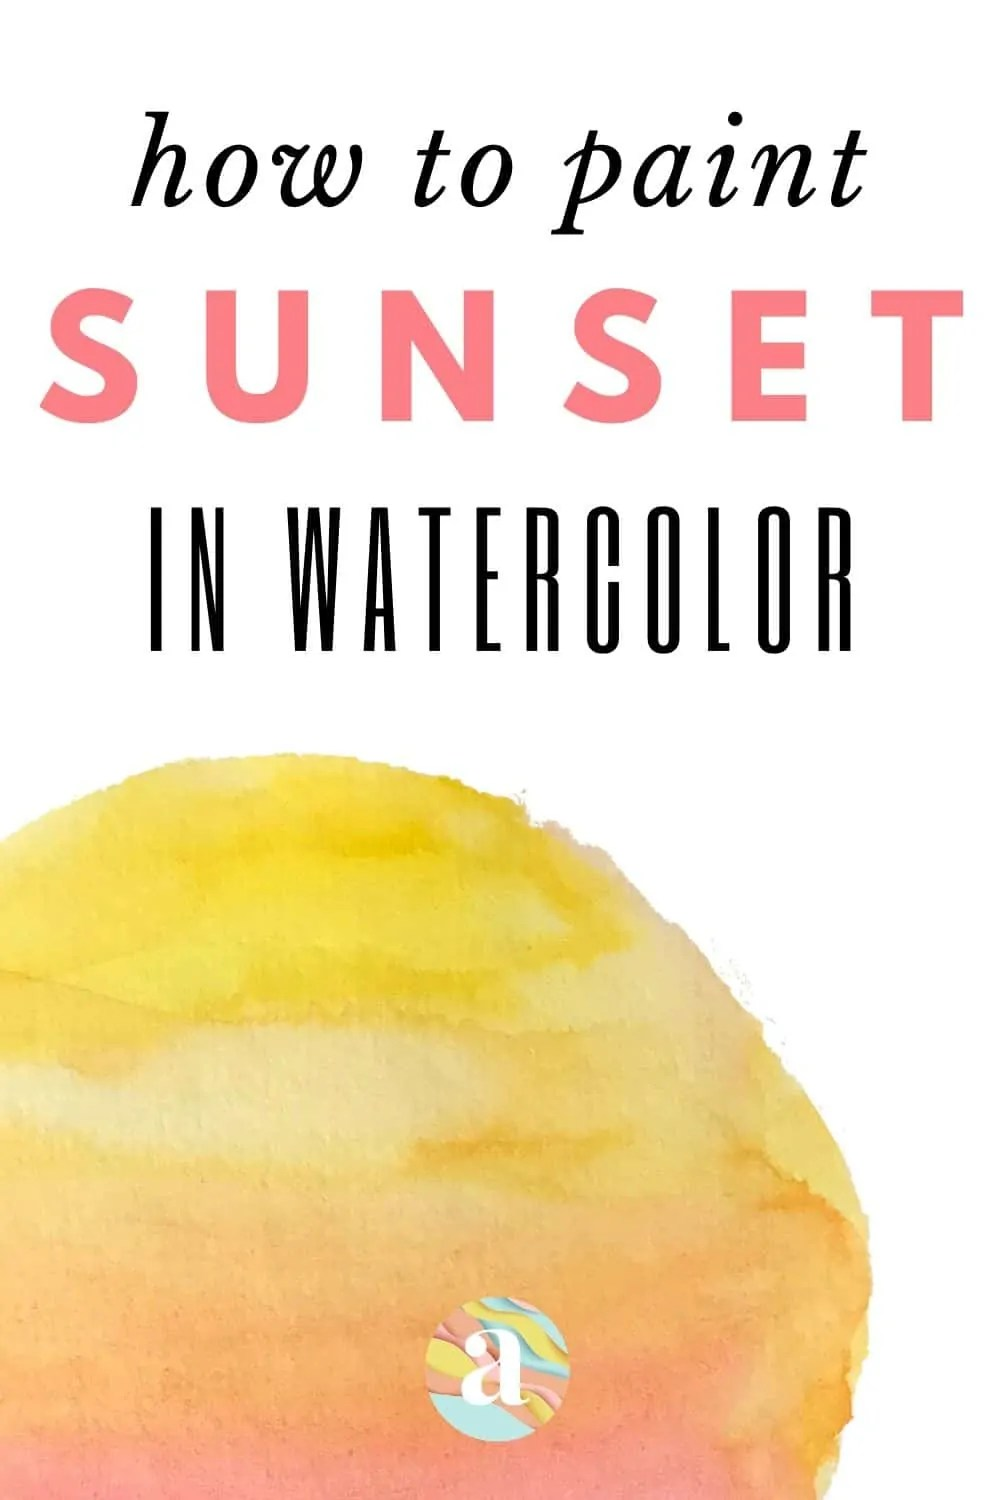 10 Ideas for Your Next Watercolor Painting 13